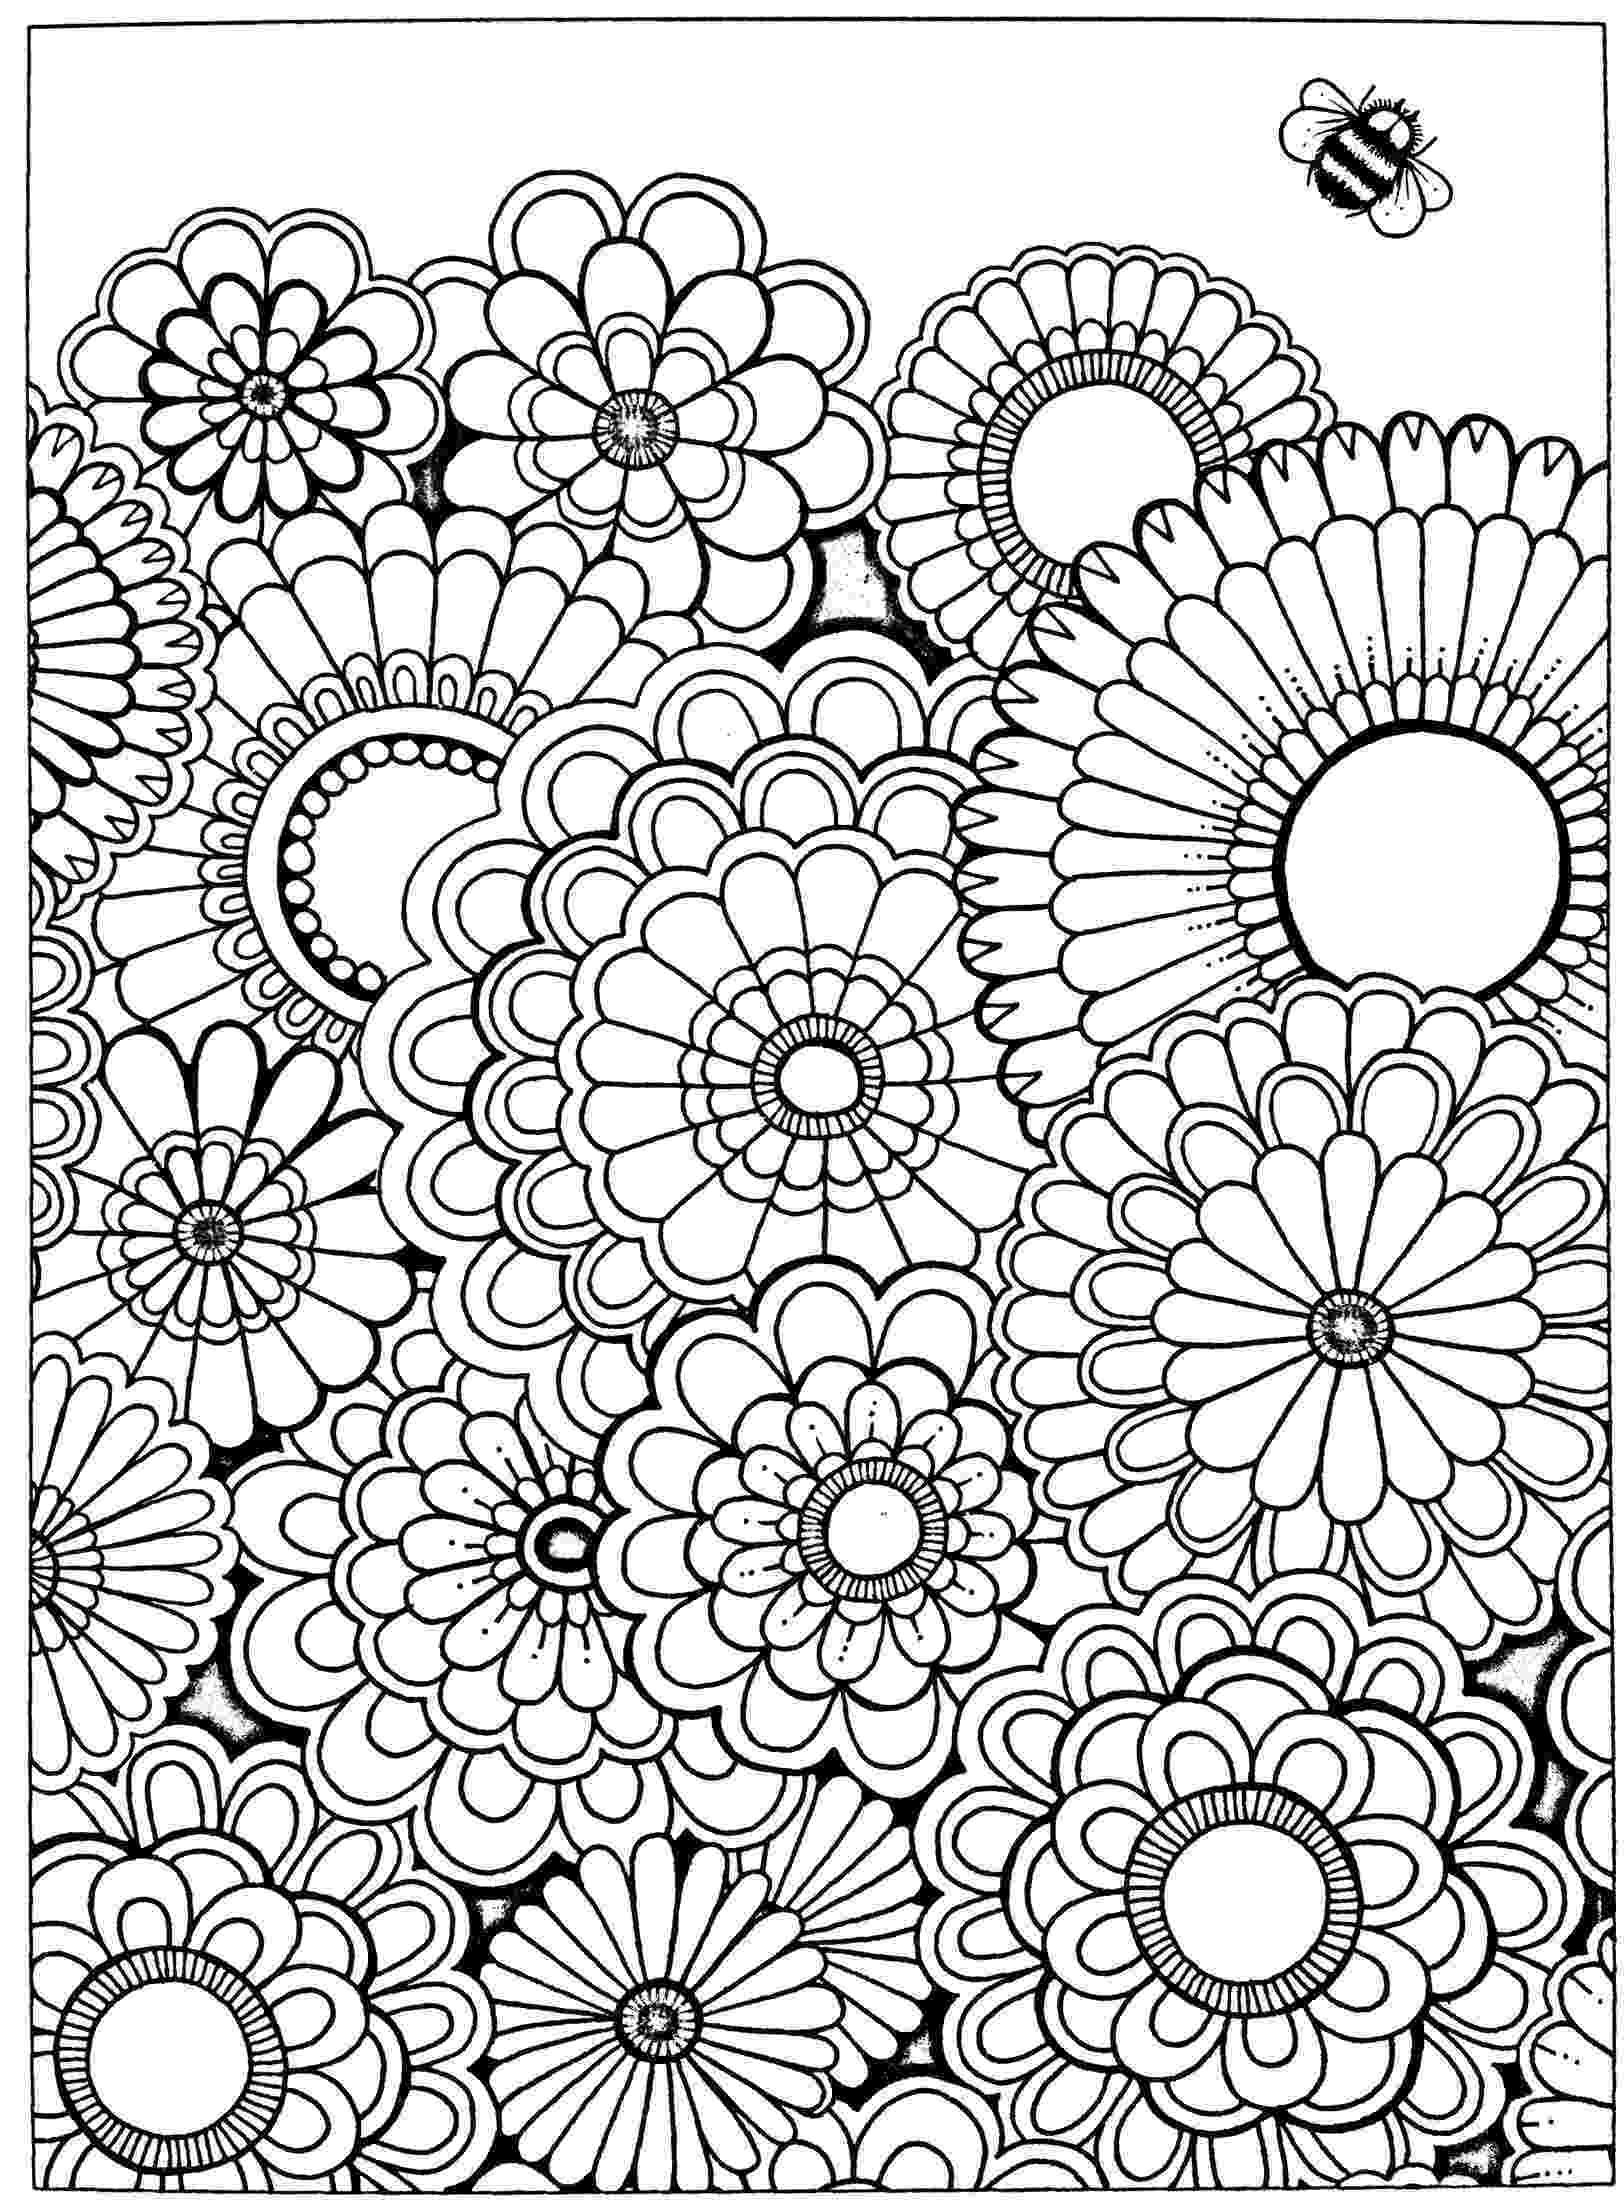 coloring books for adults secret garden secret garden an inky treasure hunt and coloring book for adults secret garden coloring books